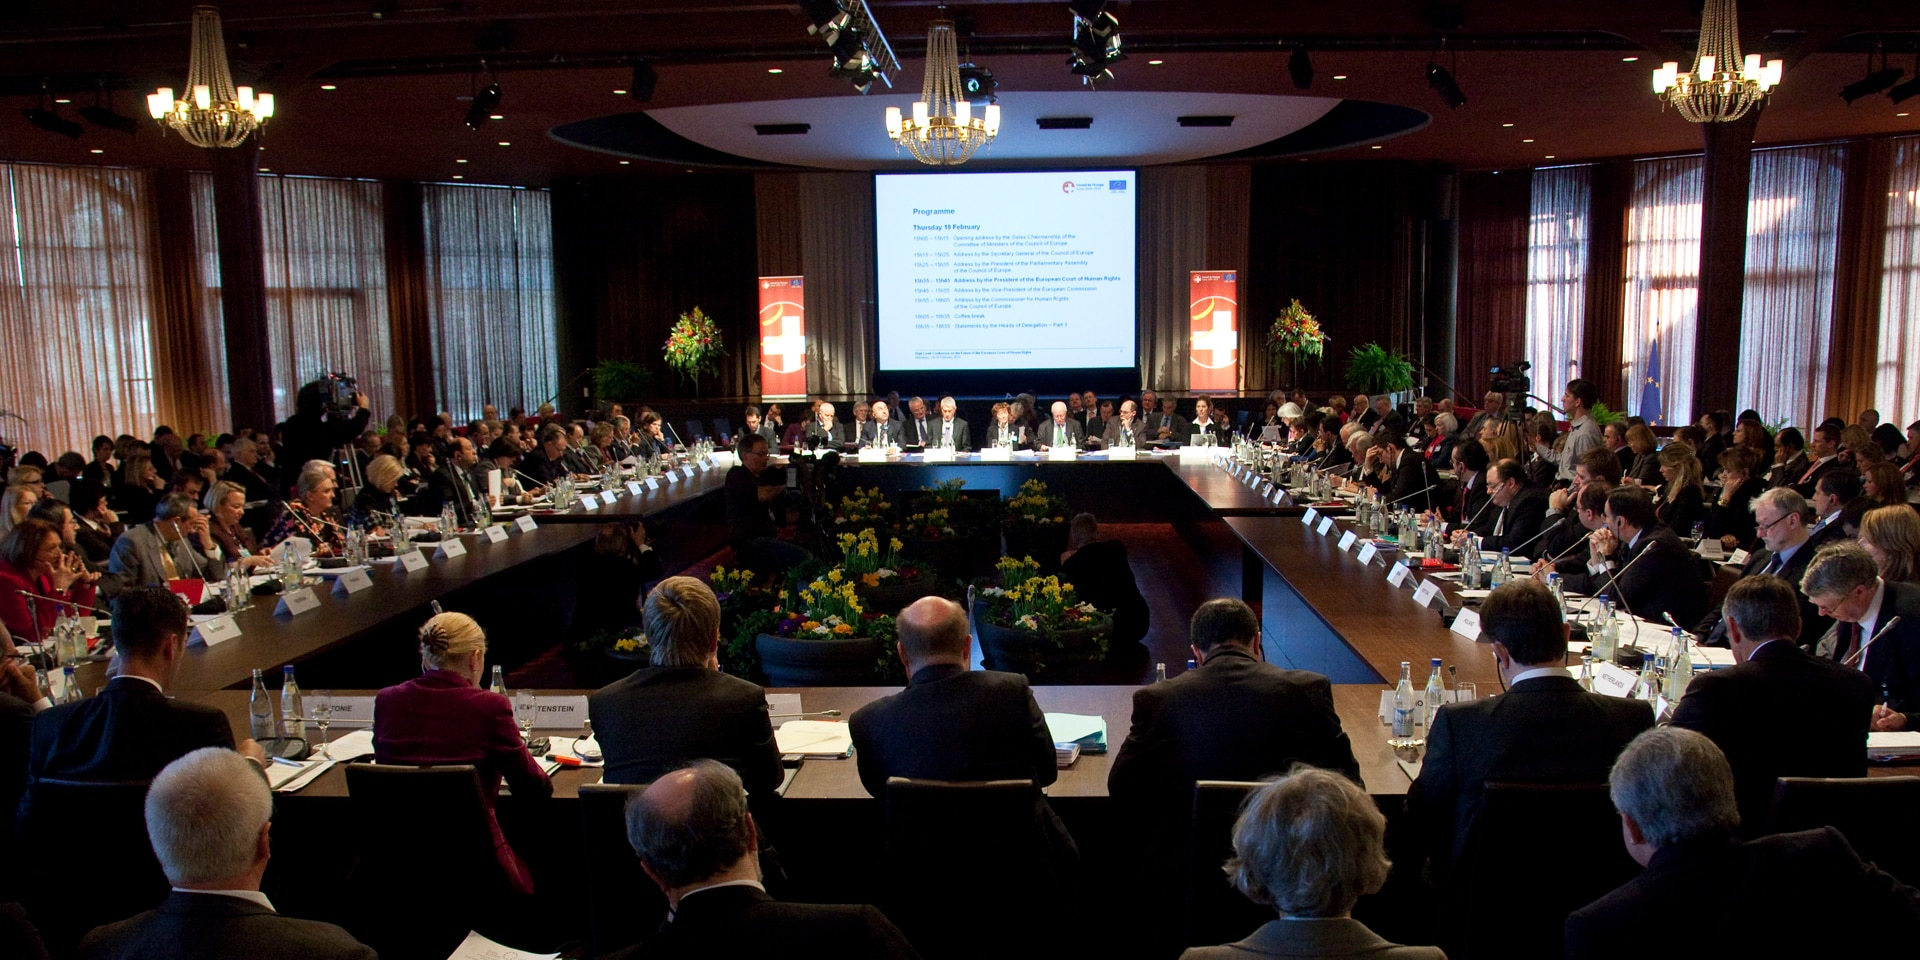 The photo was taken at the Council of Europe Ministerial Conference in February 2010 in Interlaken: it shows a room full to bursting with participants.